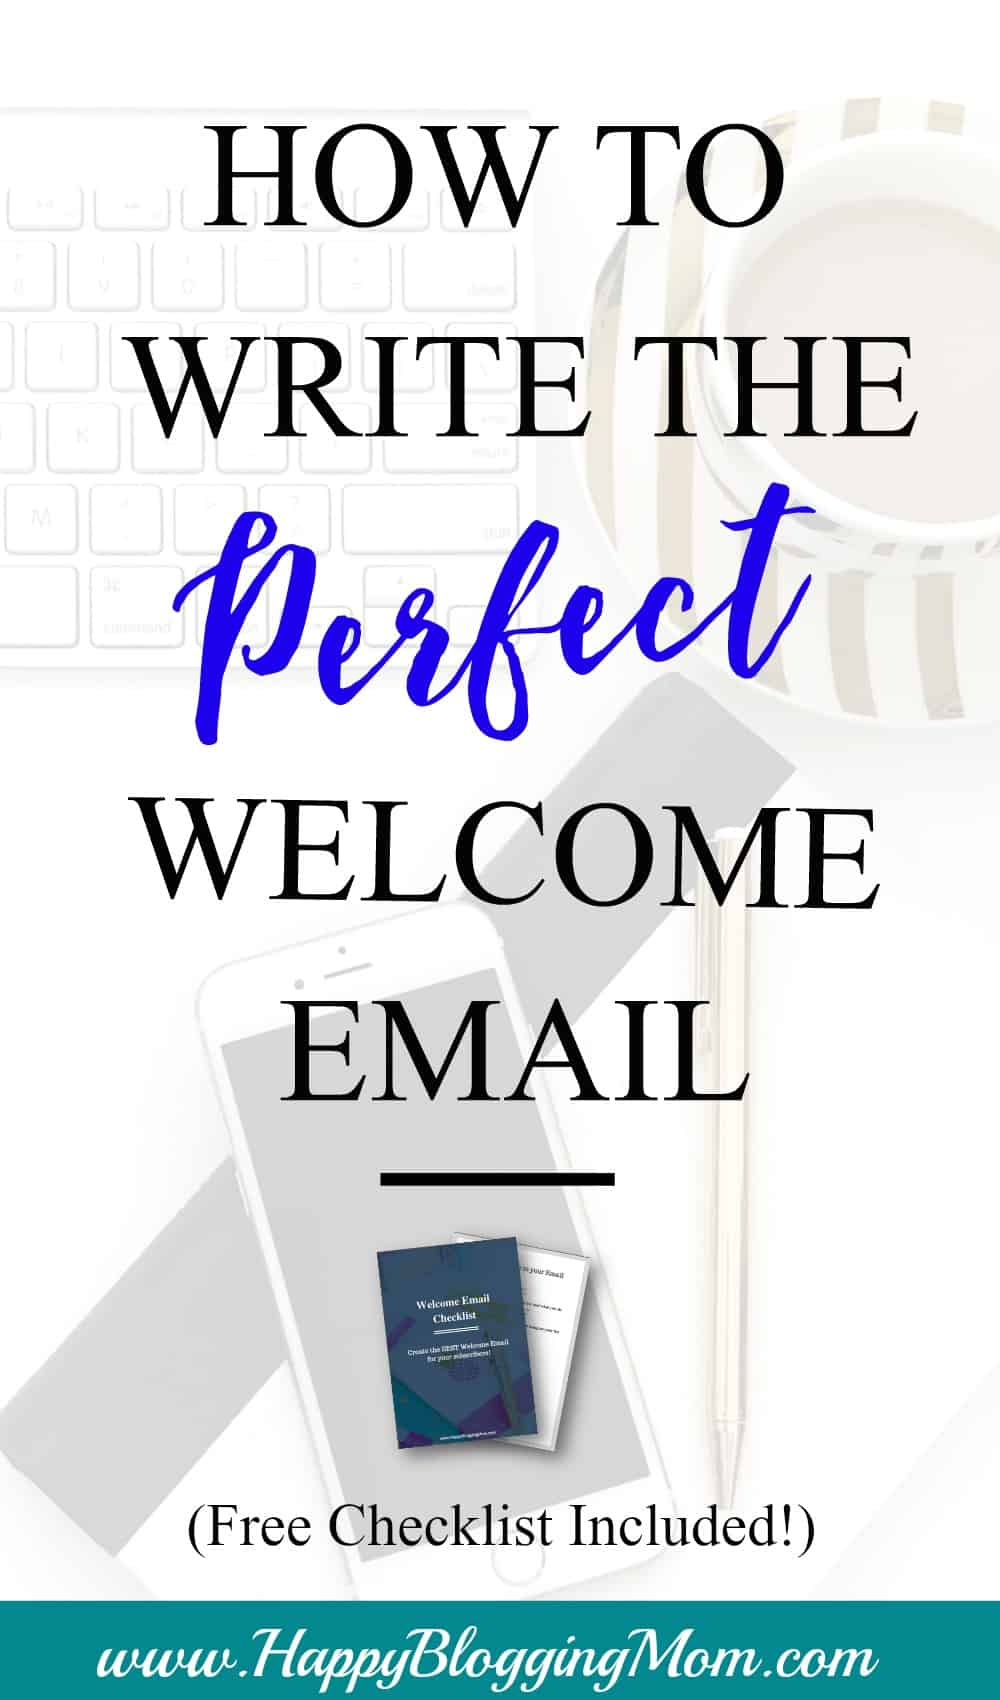 Are you struggling with writing your first welcome email? Don't know what you SHOULD include in your welcome email? Then, this post is for you! ;) By the end of reading this post, you will have an idea how to write your welcome email and all you have to do is write it! :)